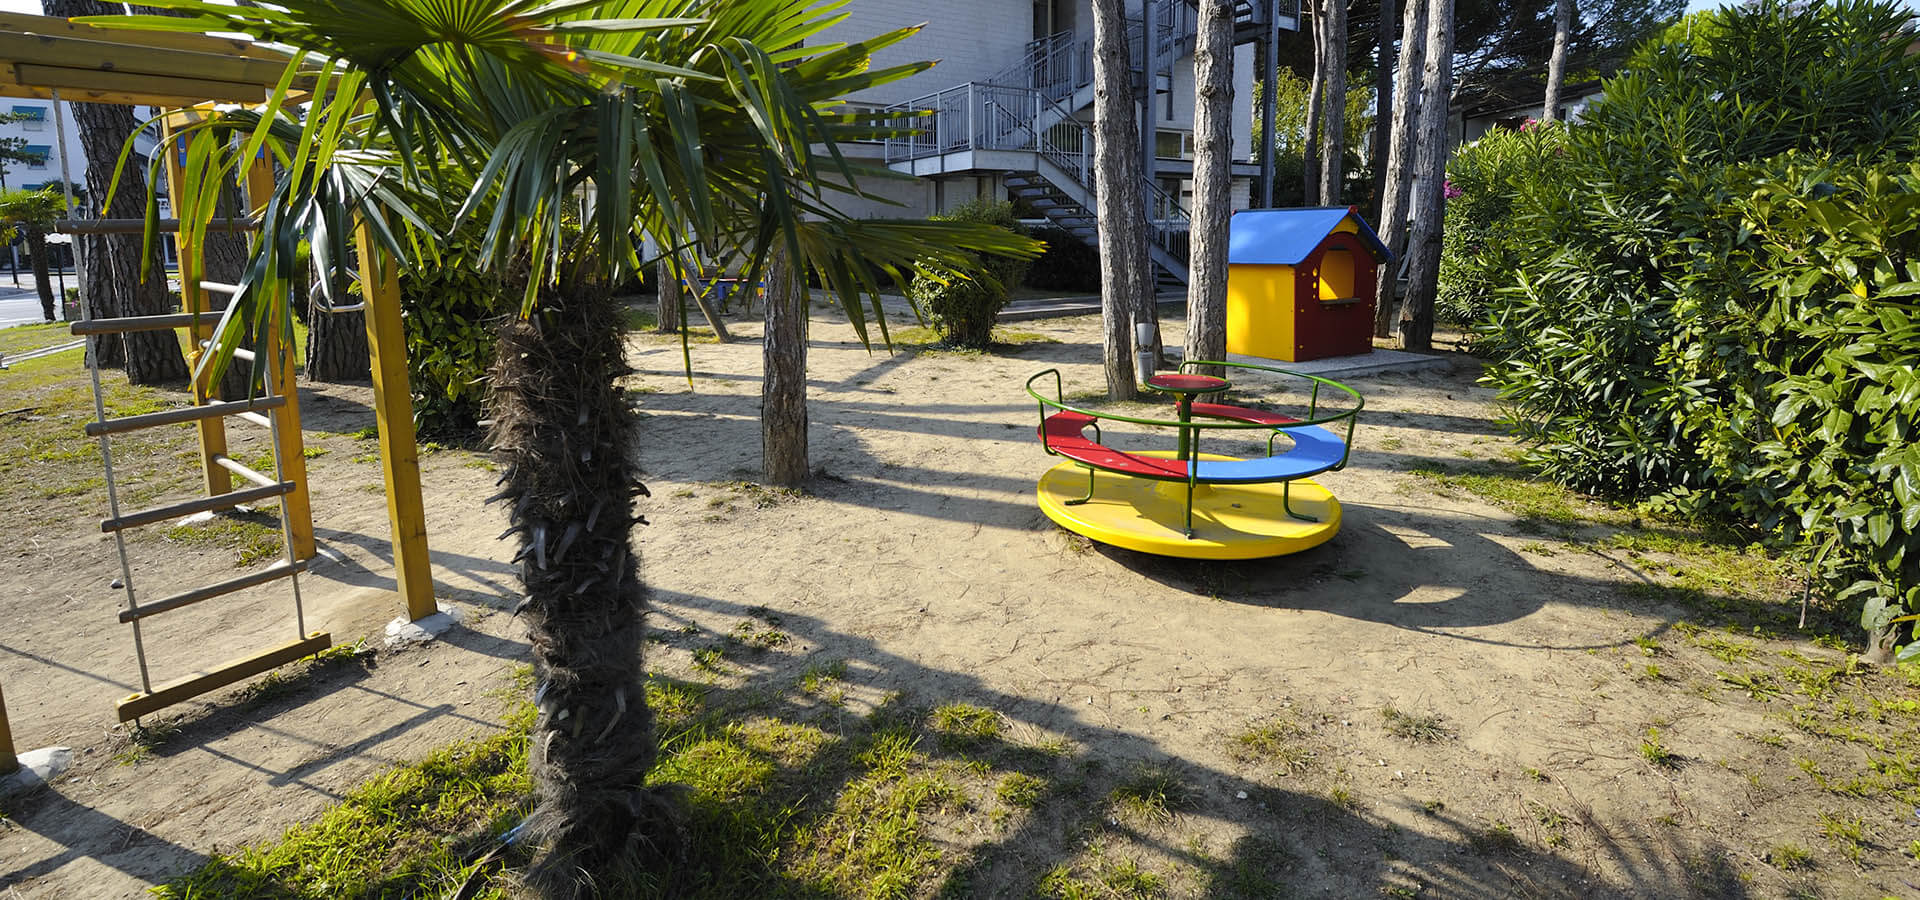 Children holiday in lignano